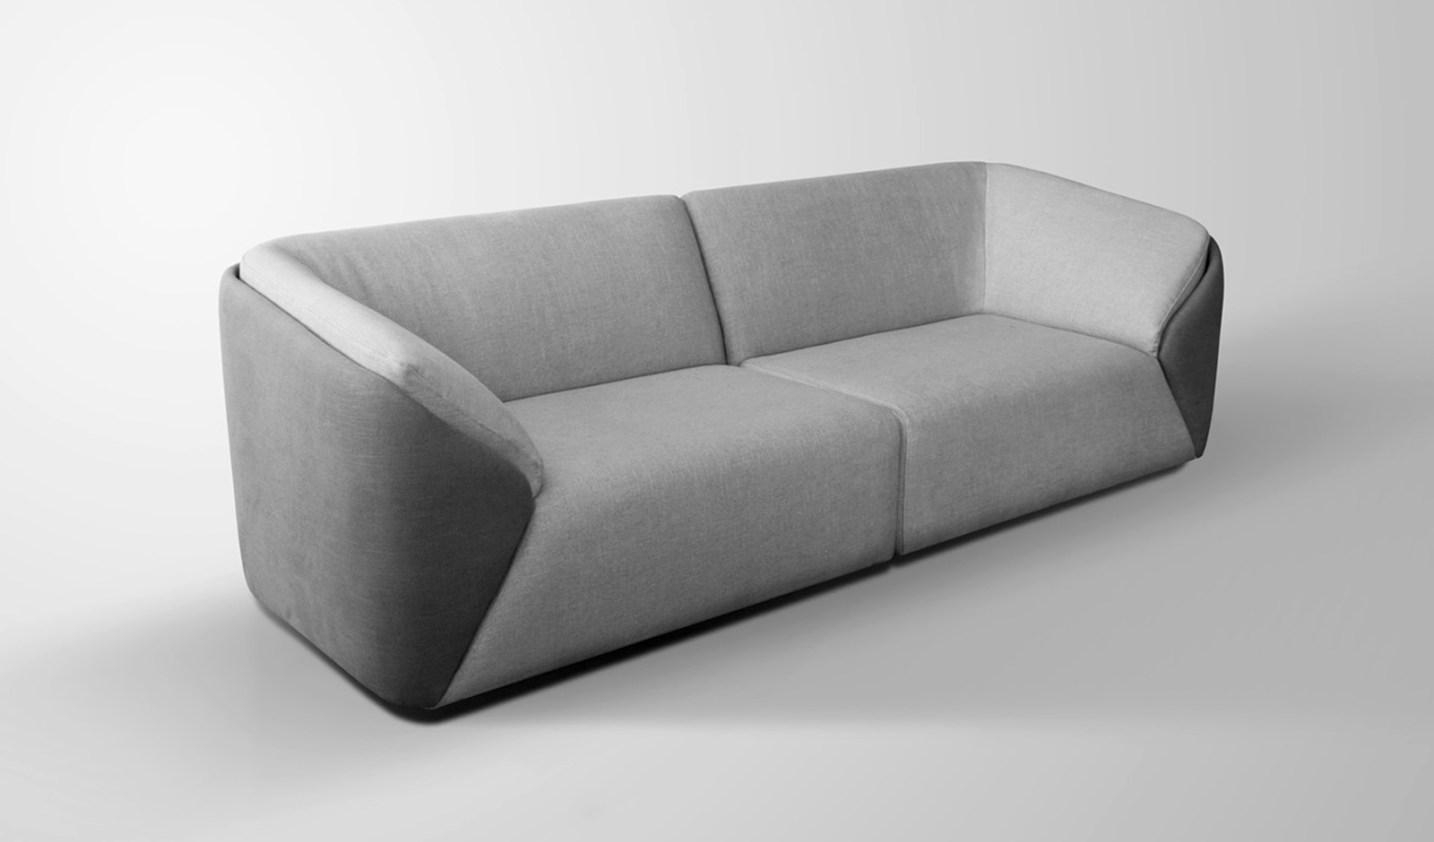 Sofa : Formidable Funky Garden Sofa Horrible Funky Sofa Promo Code Regarding Funky Sofas For Sale (Image 13 of 20)